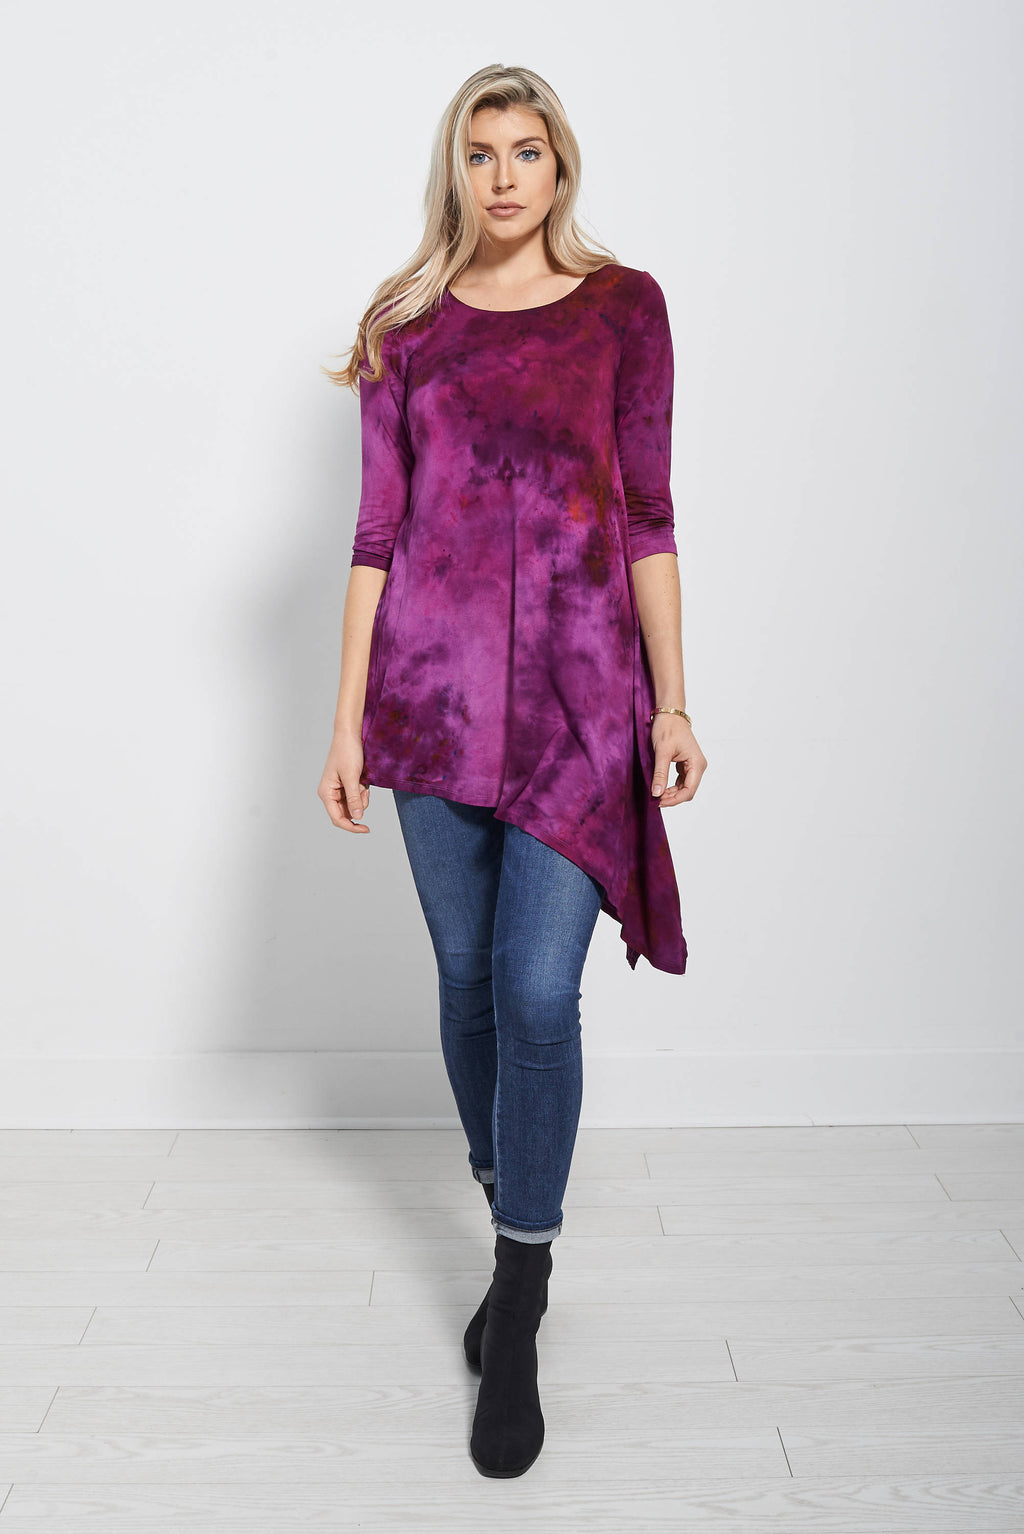 Asymmetrical tunic - Masha Apparel